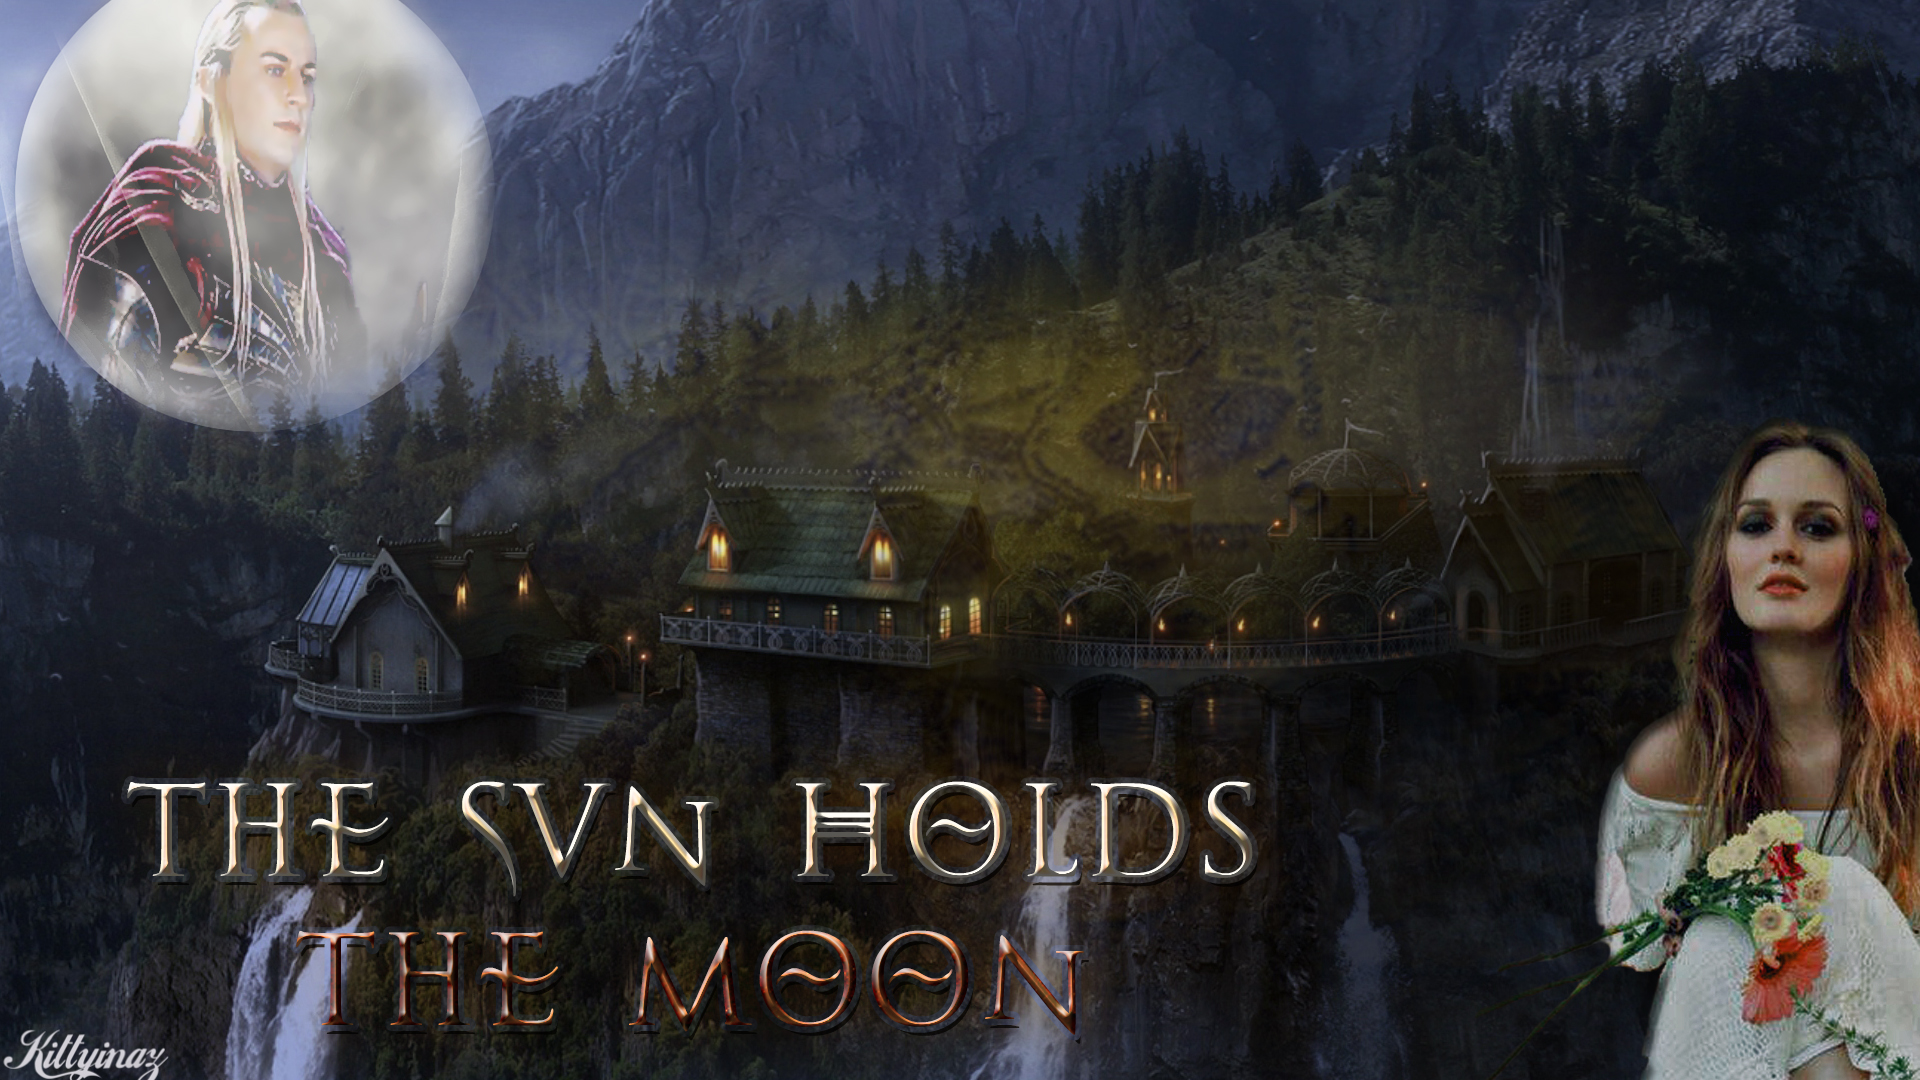 The Sun Hold the Moon 2